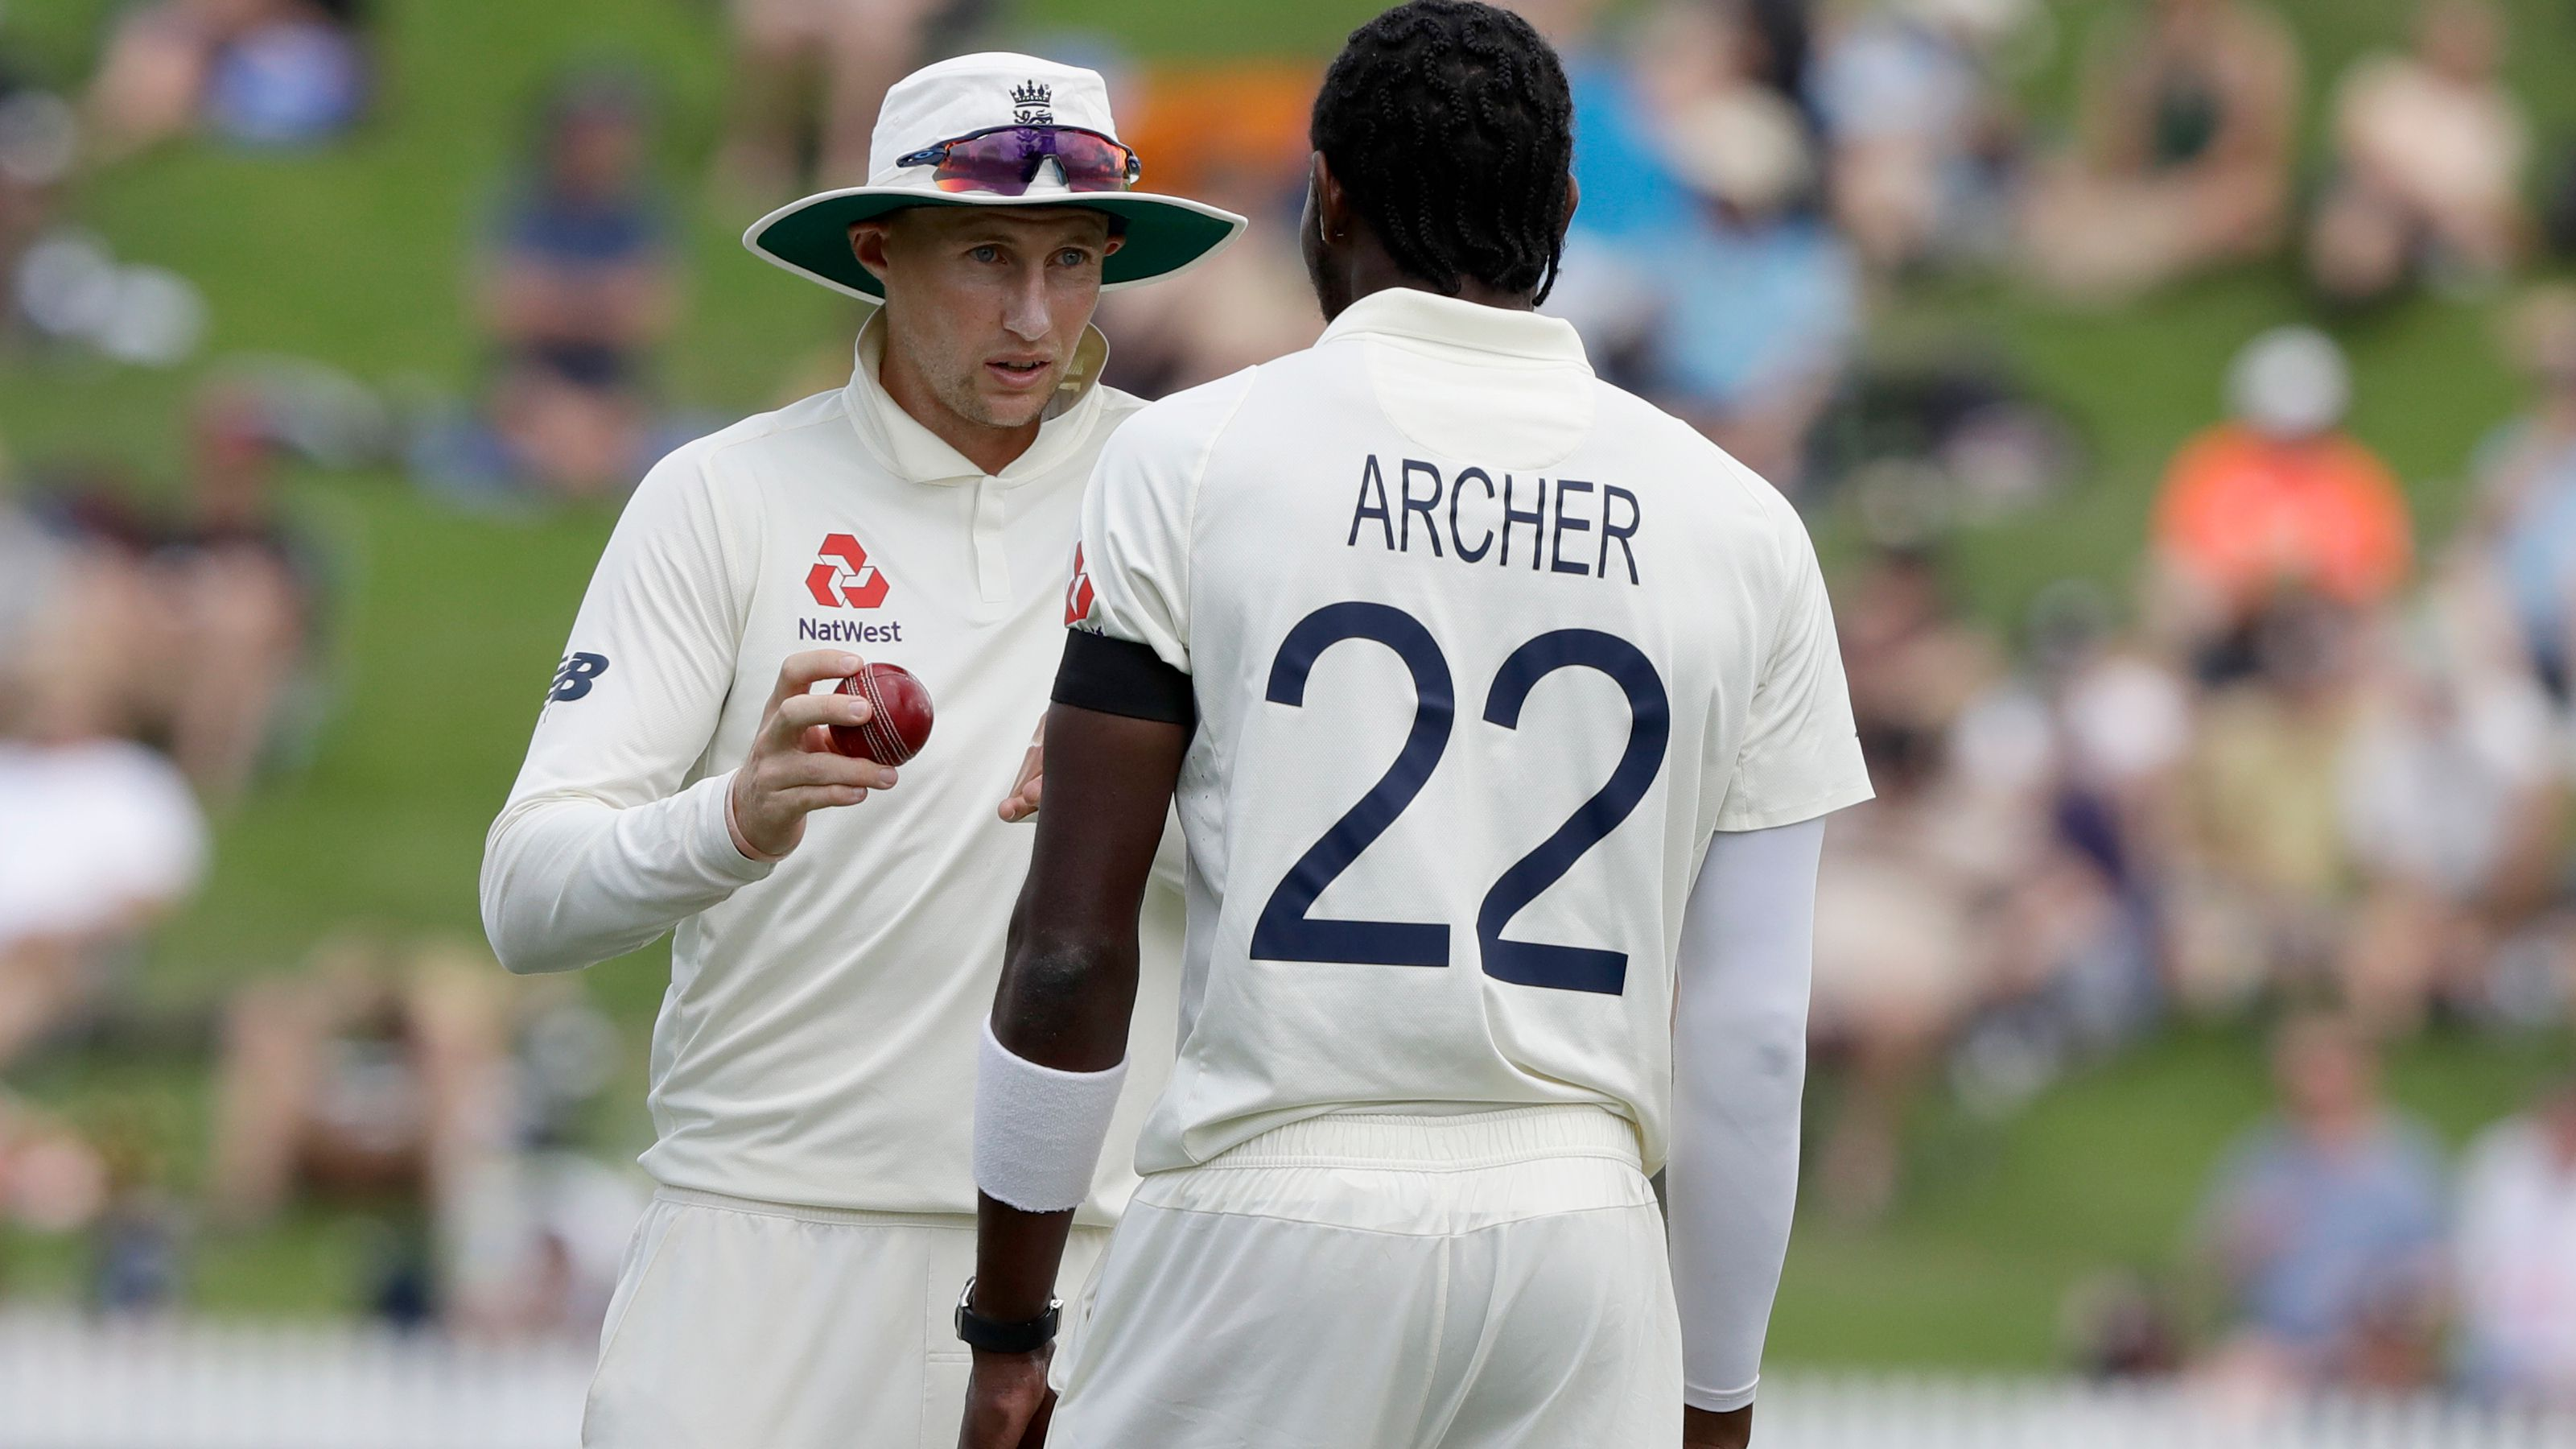 UK view: England team 'no chance' of regaining Ashes next tour